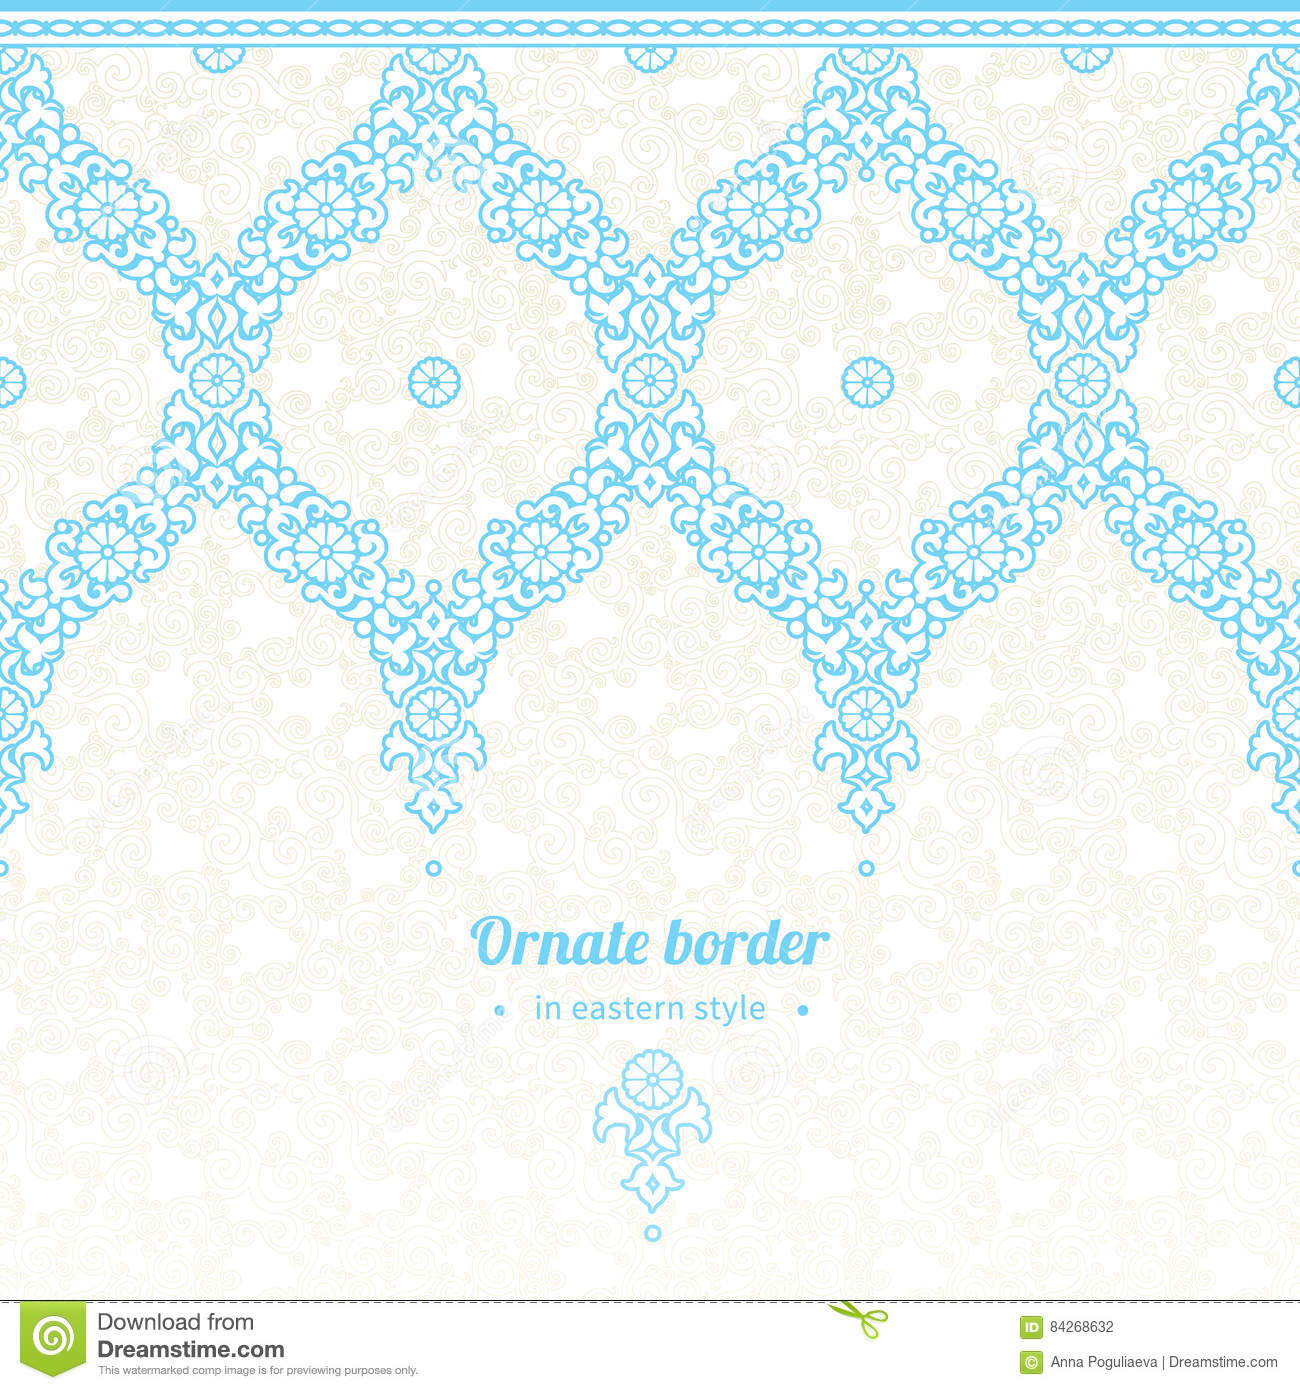 vector seamless border in eastern style ornate element for new years design ornamental lace pattern for wedding invitations and greeting cards elegant